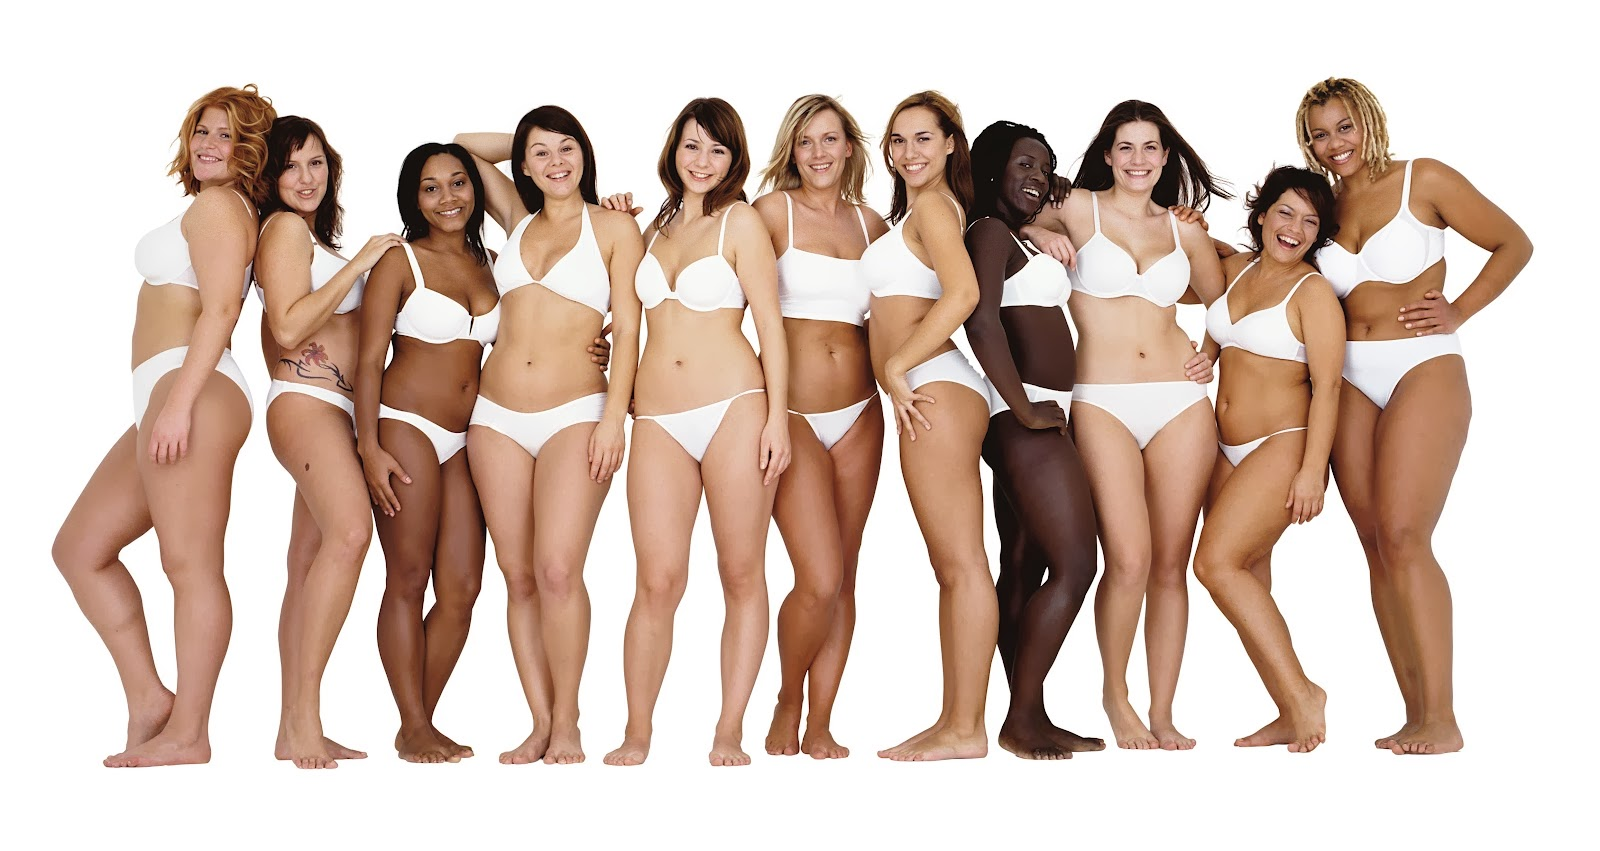 why are womens bodies so beautiful